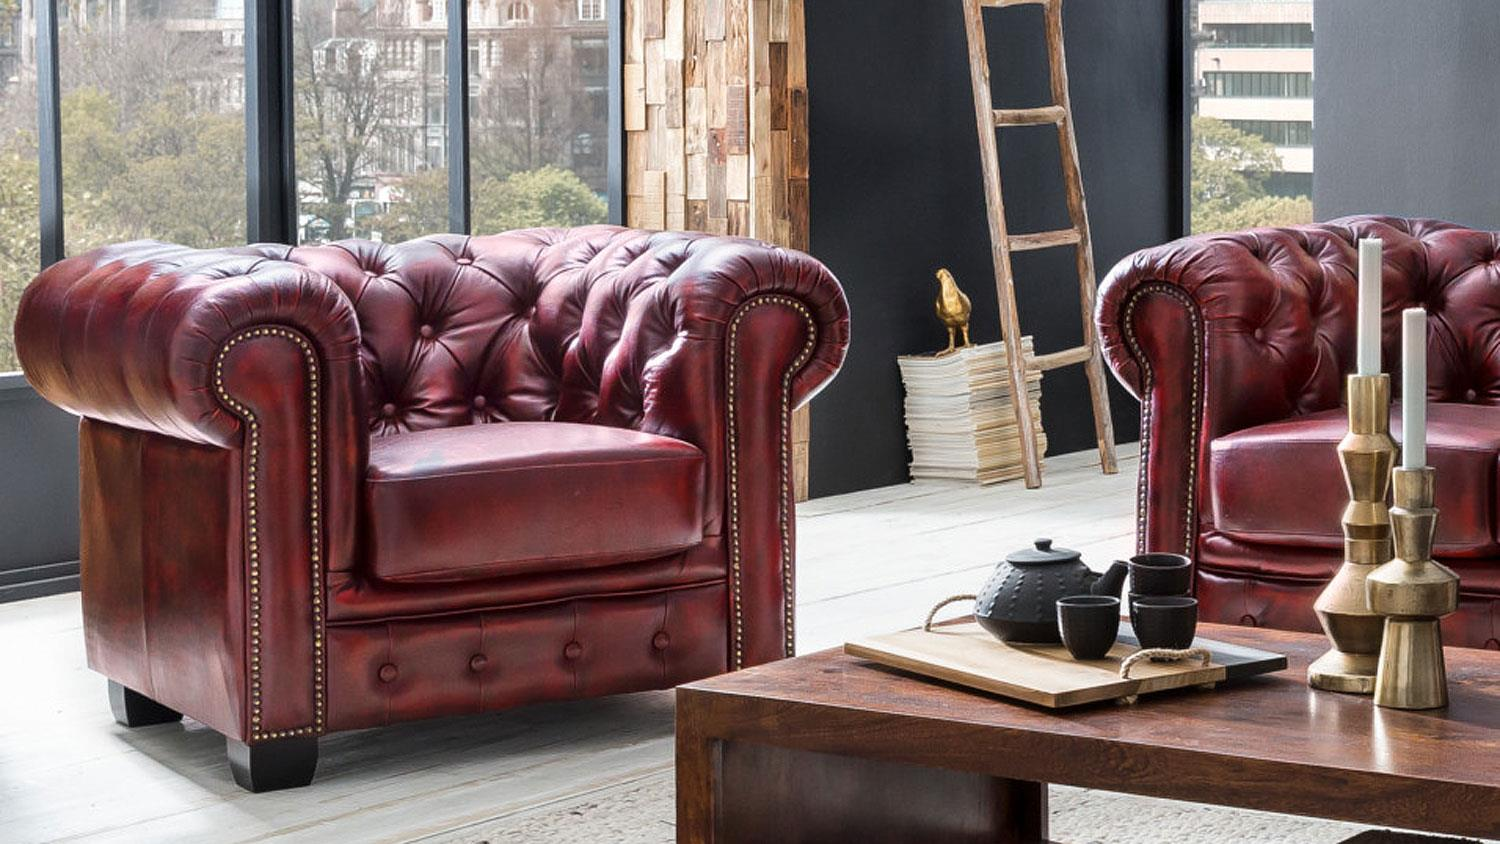 Antik Sessel Leder Chesterfield Sessel Leder Rot Antik Luxus Hochwertig